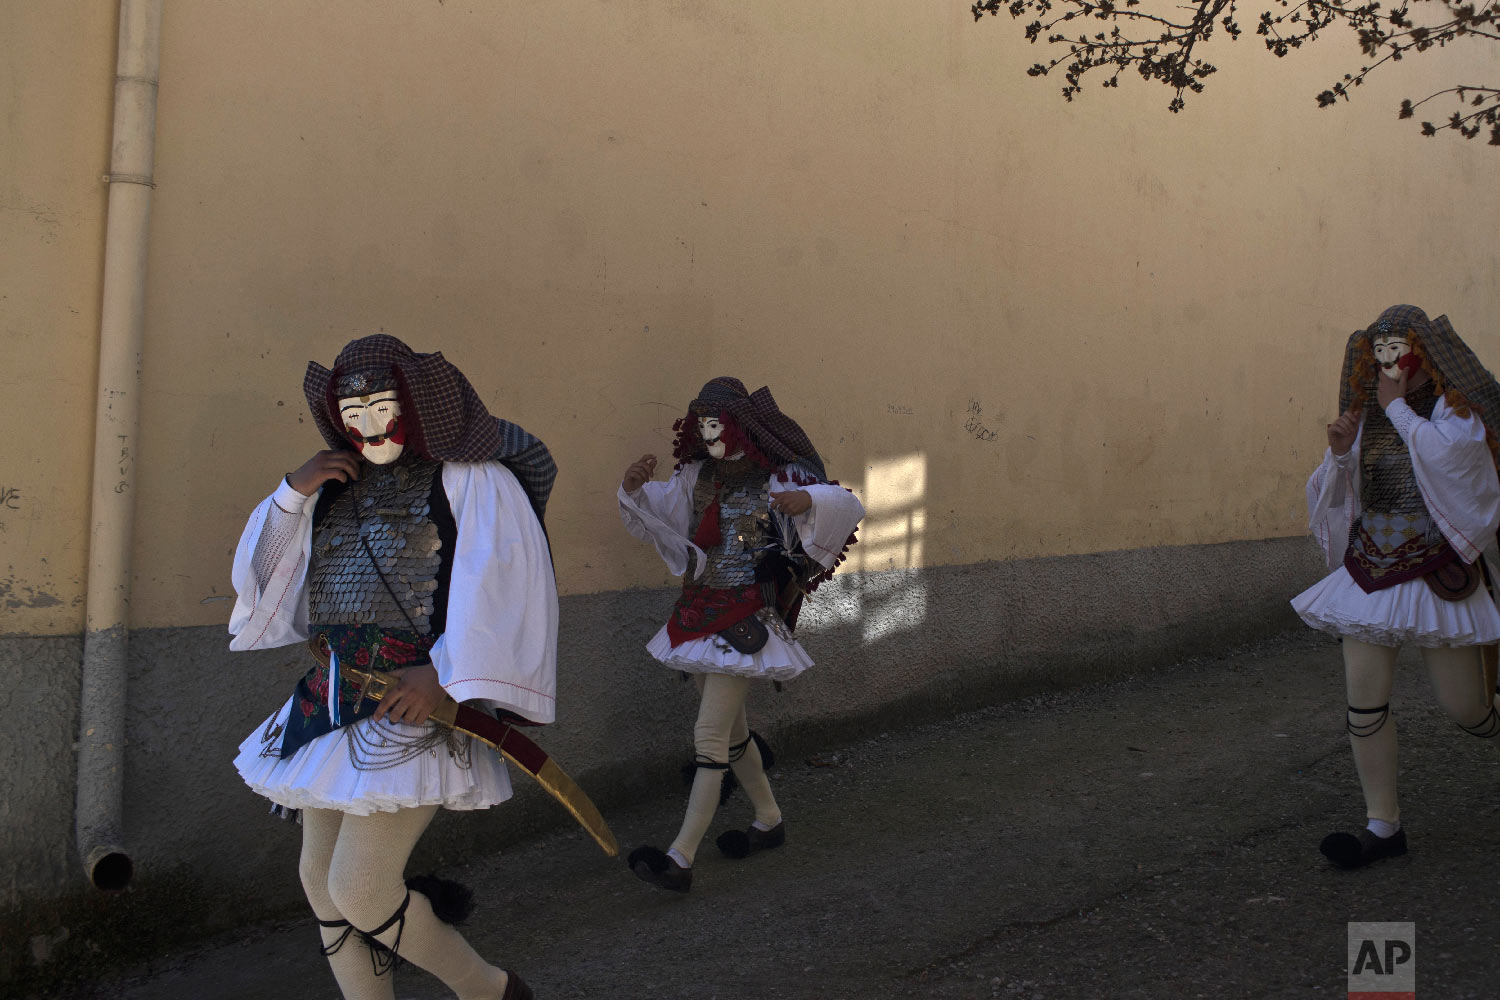 Dancers with masks and traditional costume prepare to perform in the Boules and Genitsaroi carnival parade in the town of Naousa, northern Greece on March 10, 2019. (AP Photo/Petros Giannakouris)